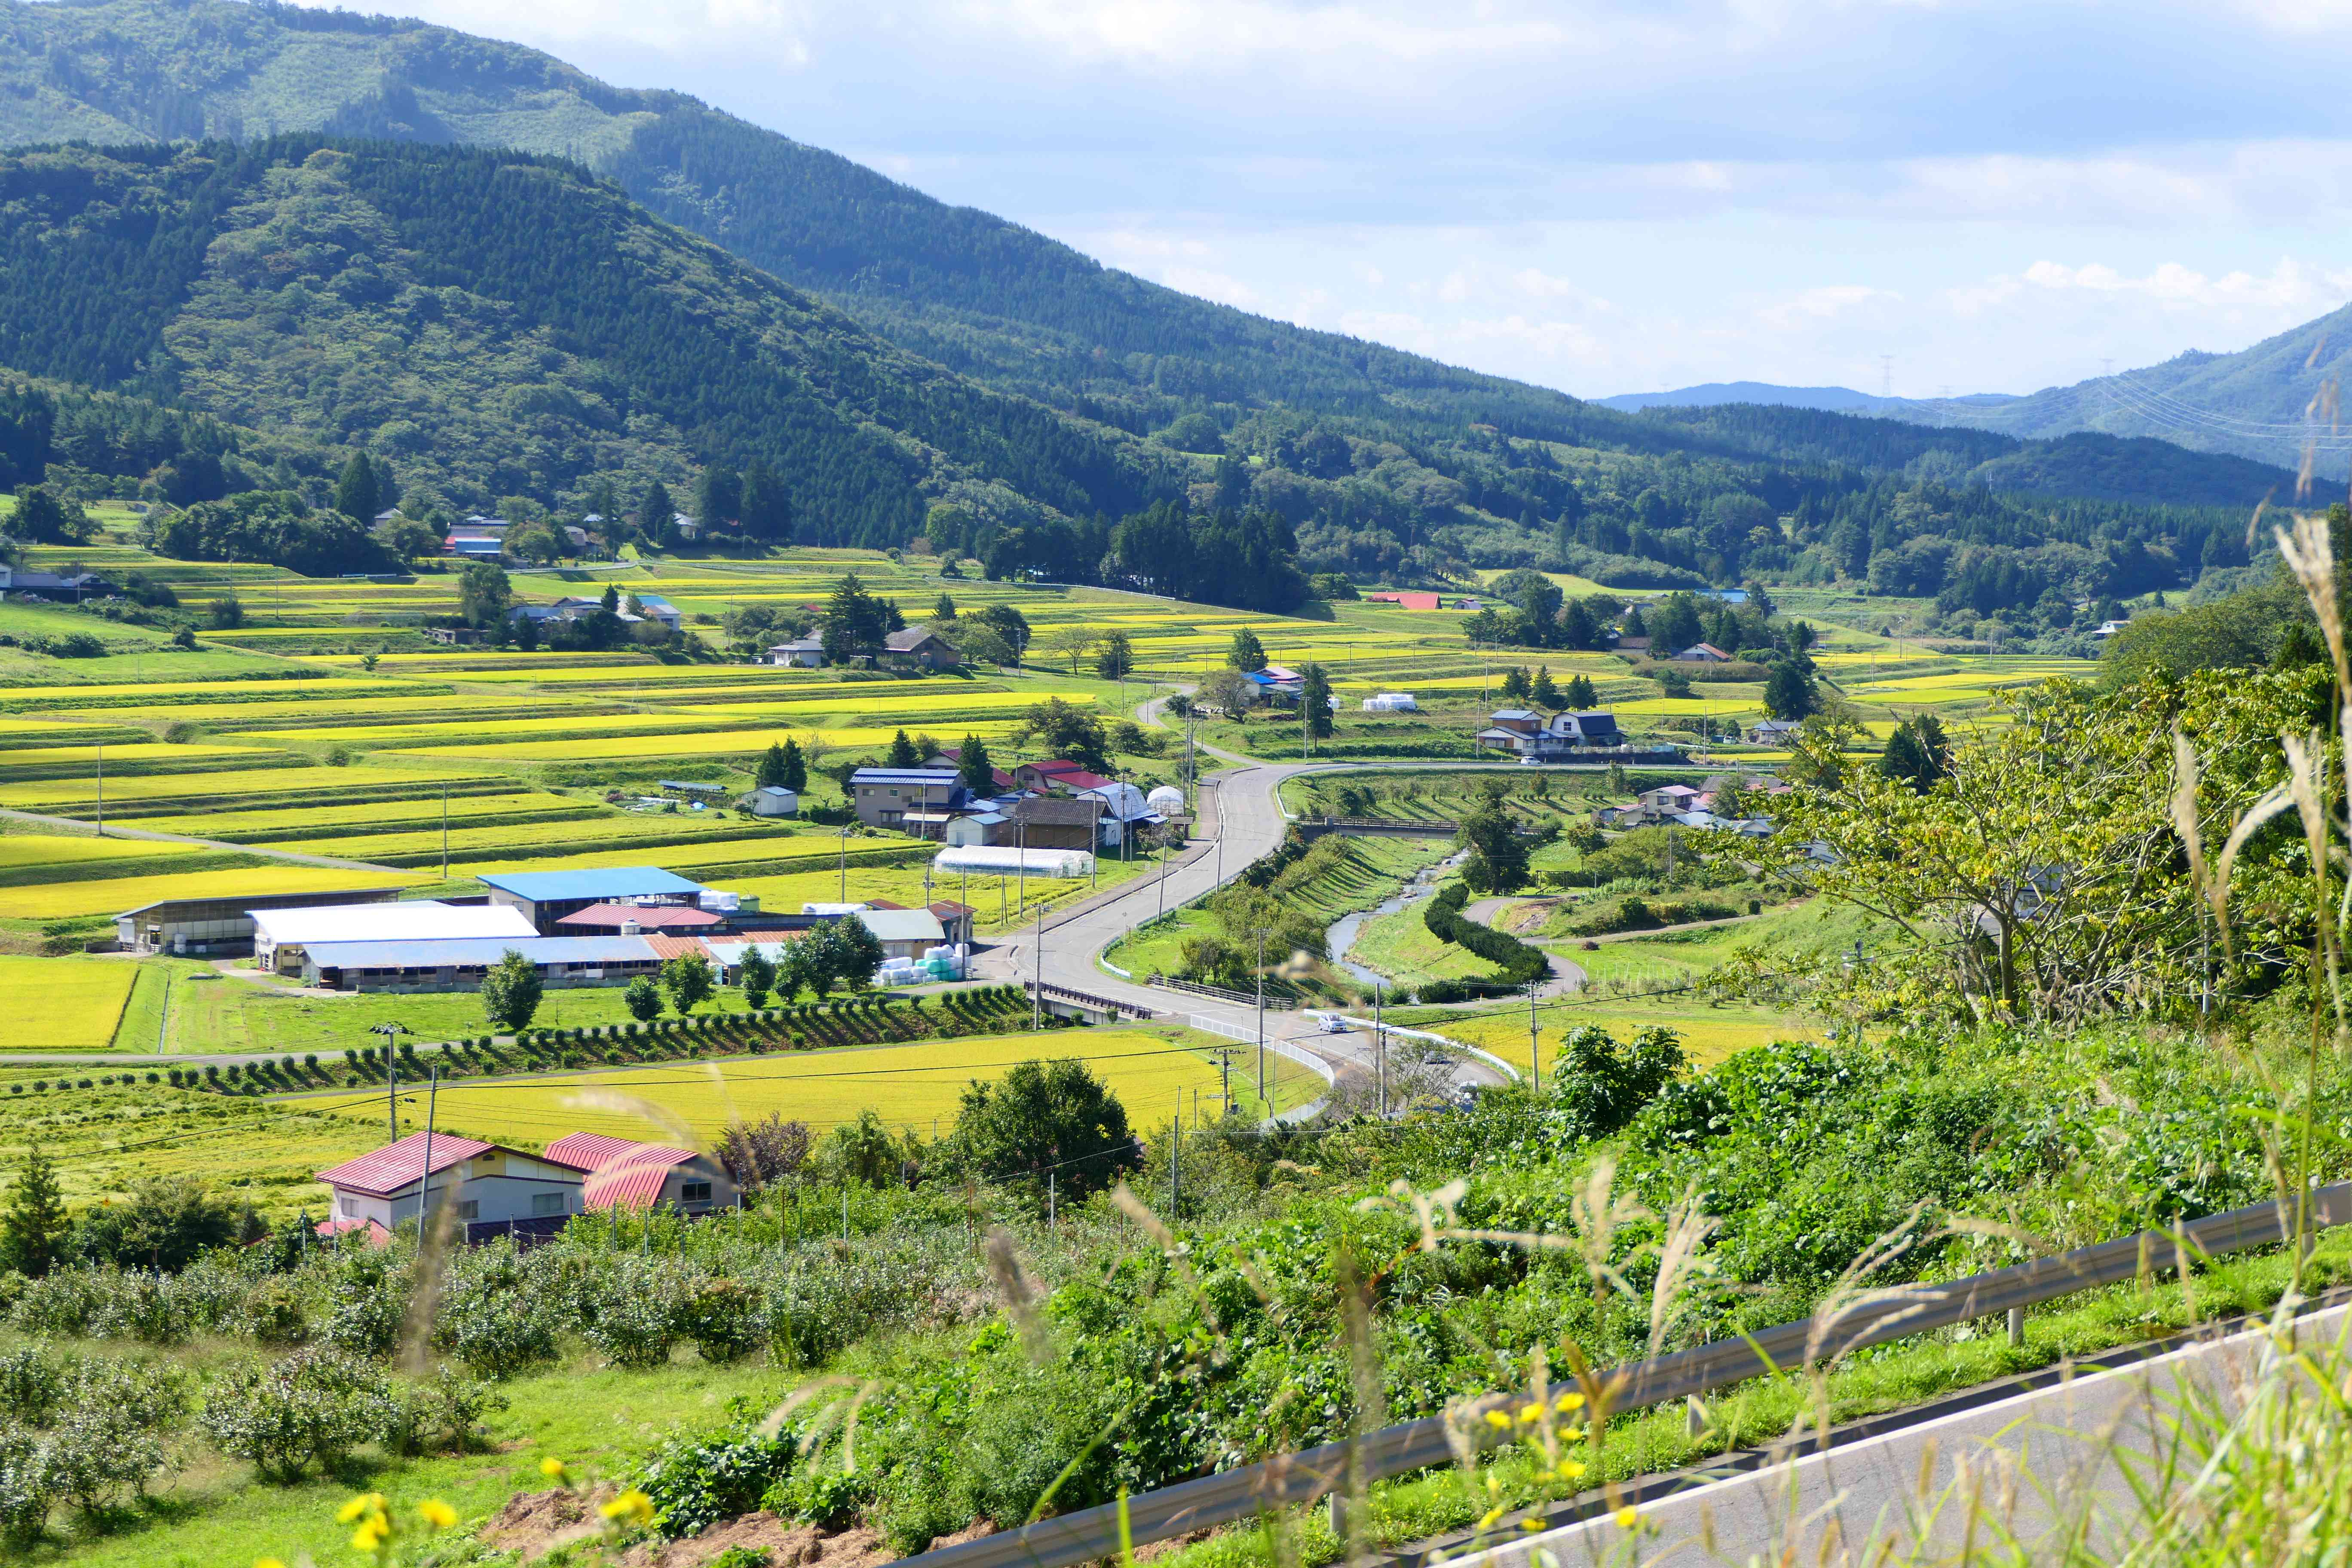 The beautiful valley in Tono, Japan on a bright day